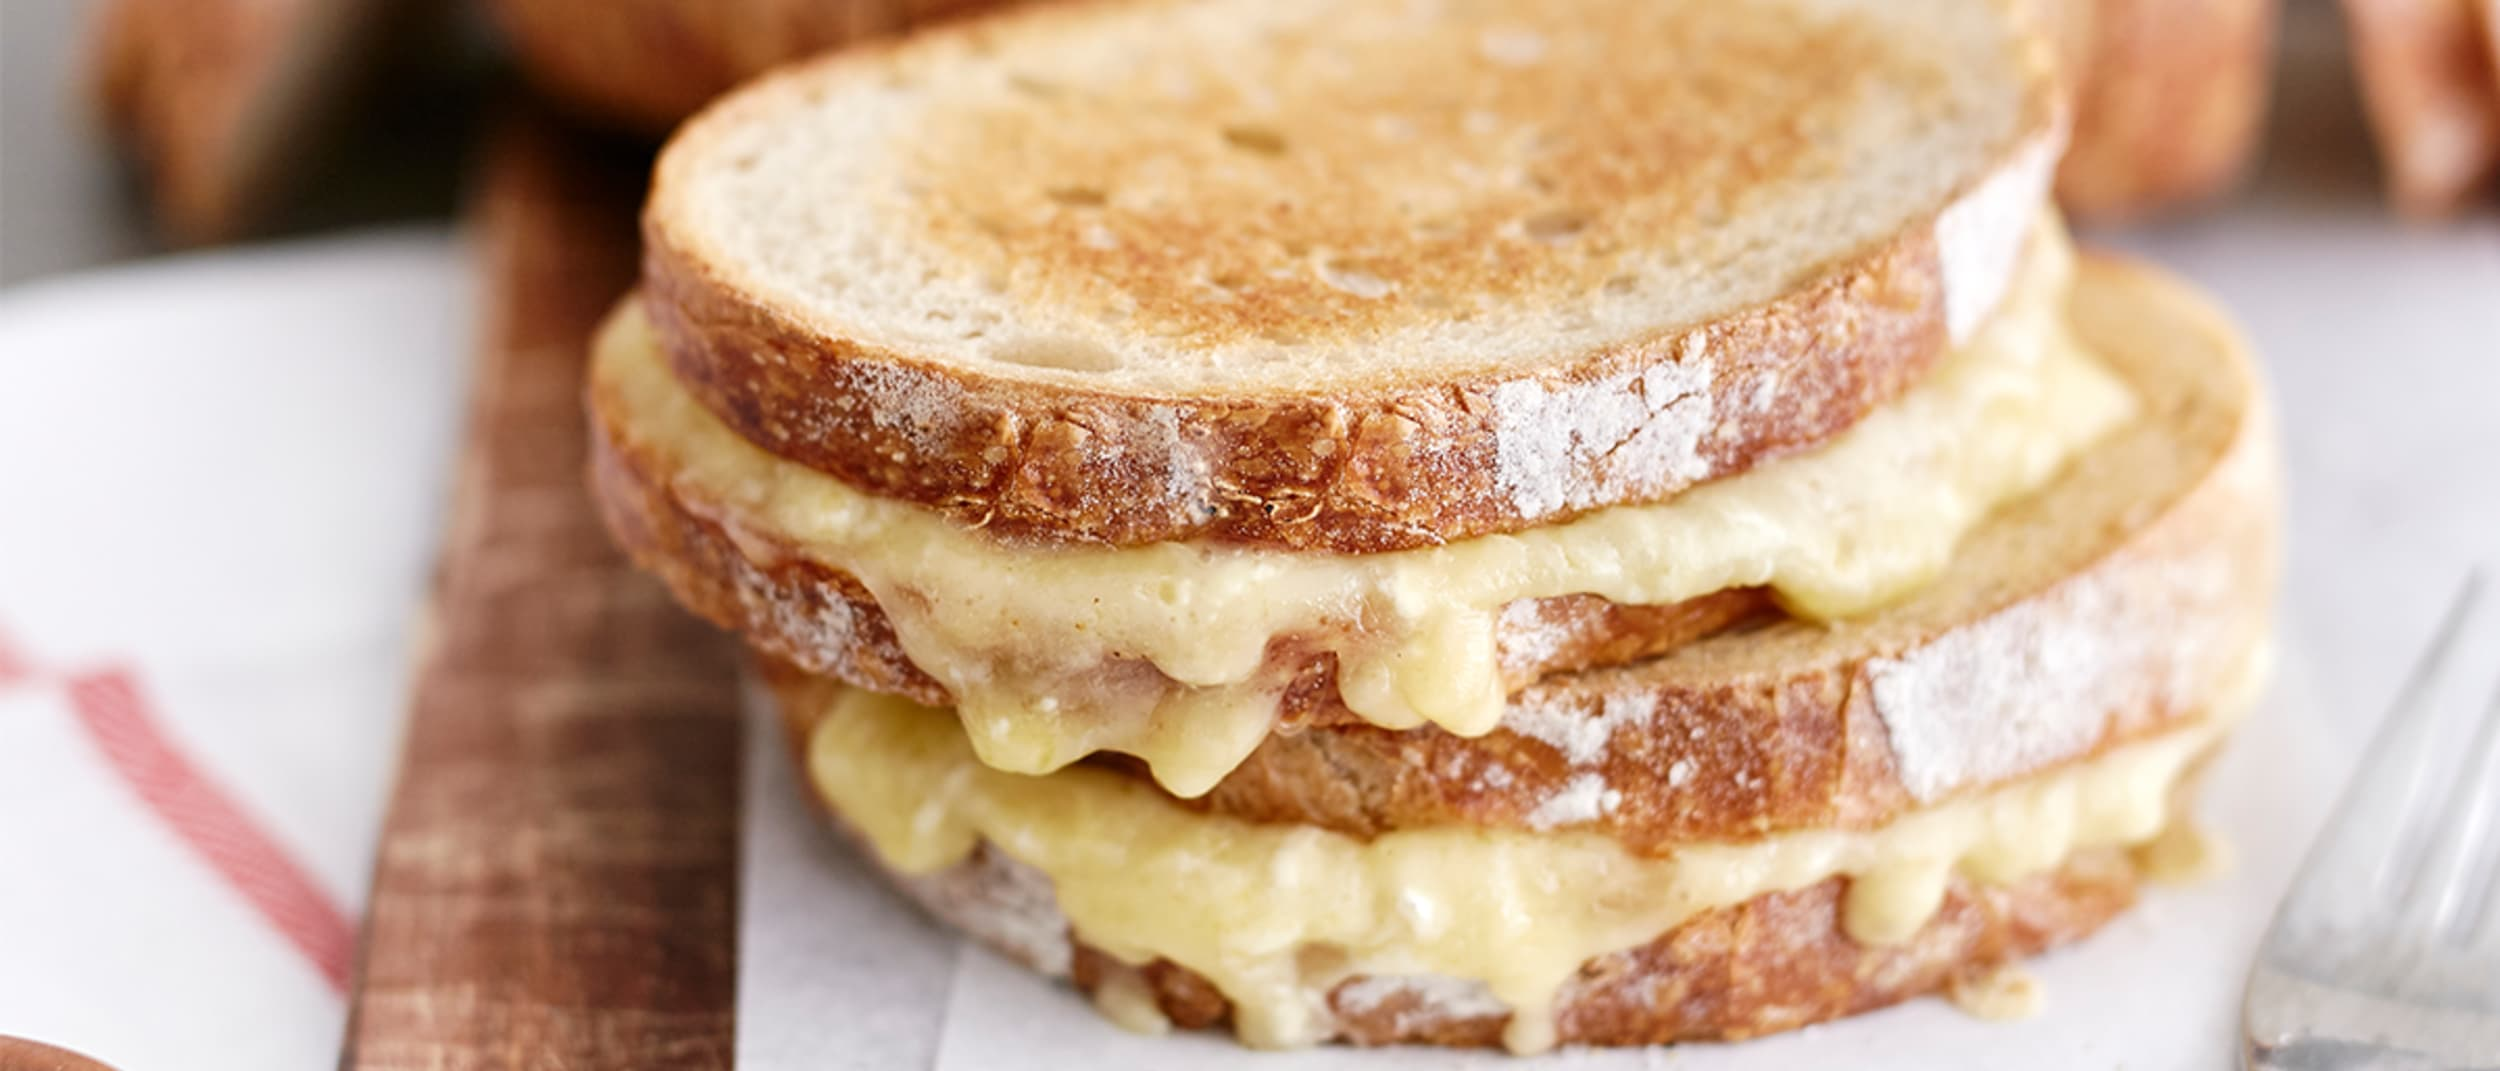 The art of creating the ultimate toastie